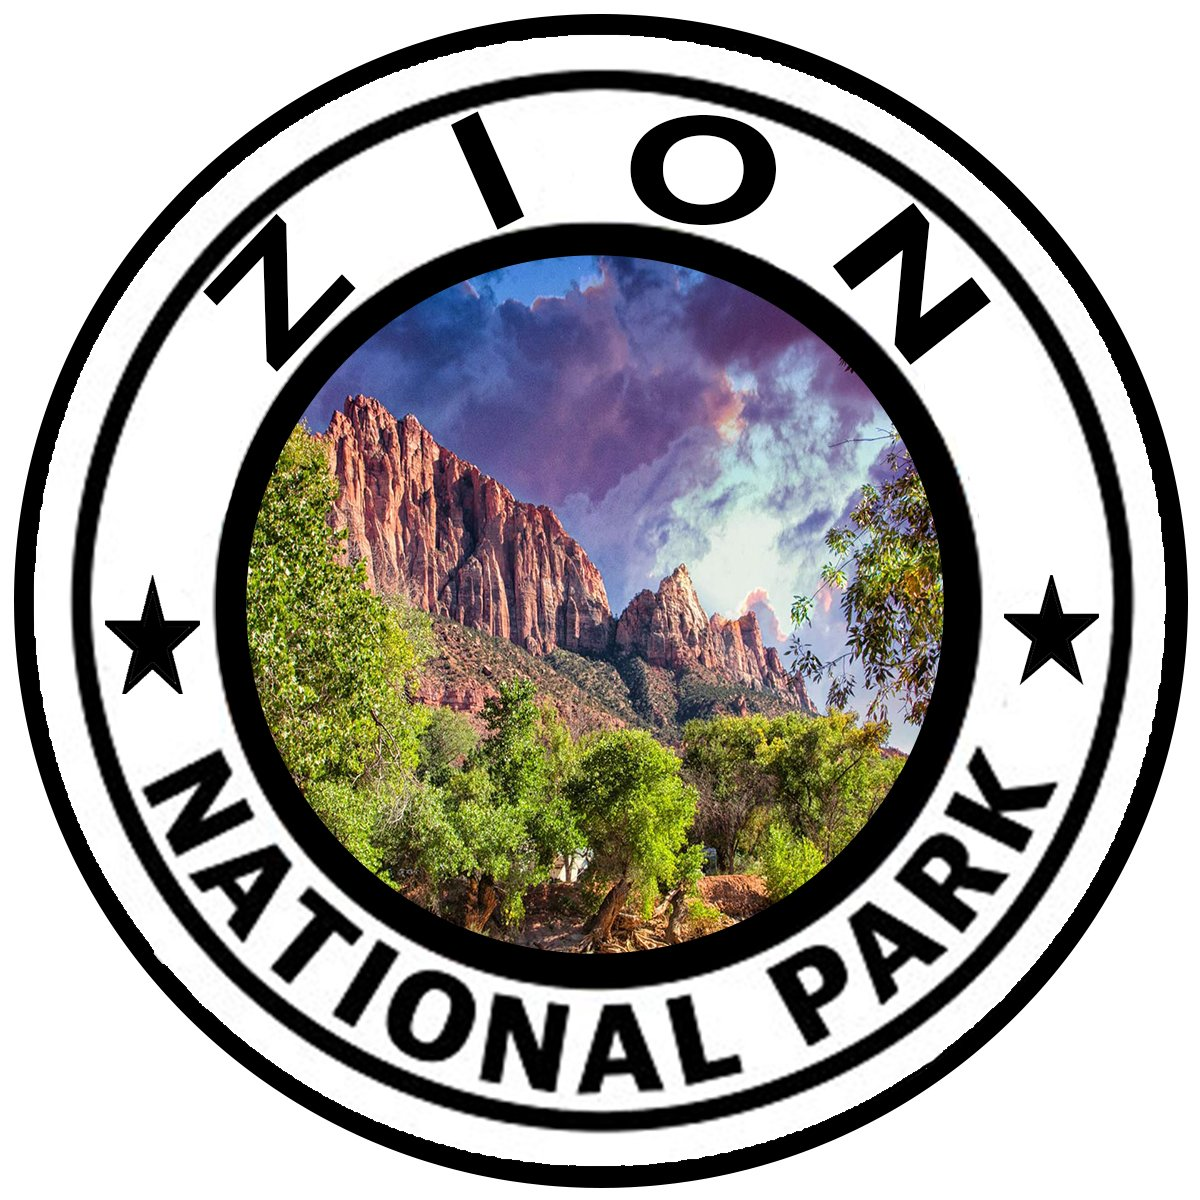 Rogue River Tactical Zion National Park Sticker 5 Round Car Auto Decal Utah Canyon KDWVMA2577